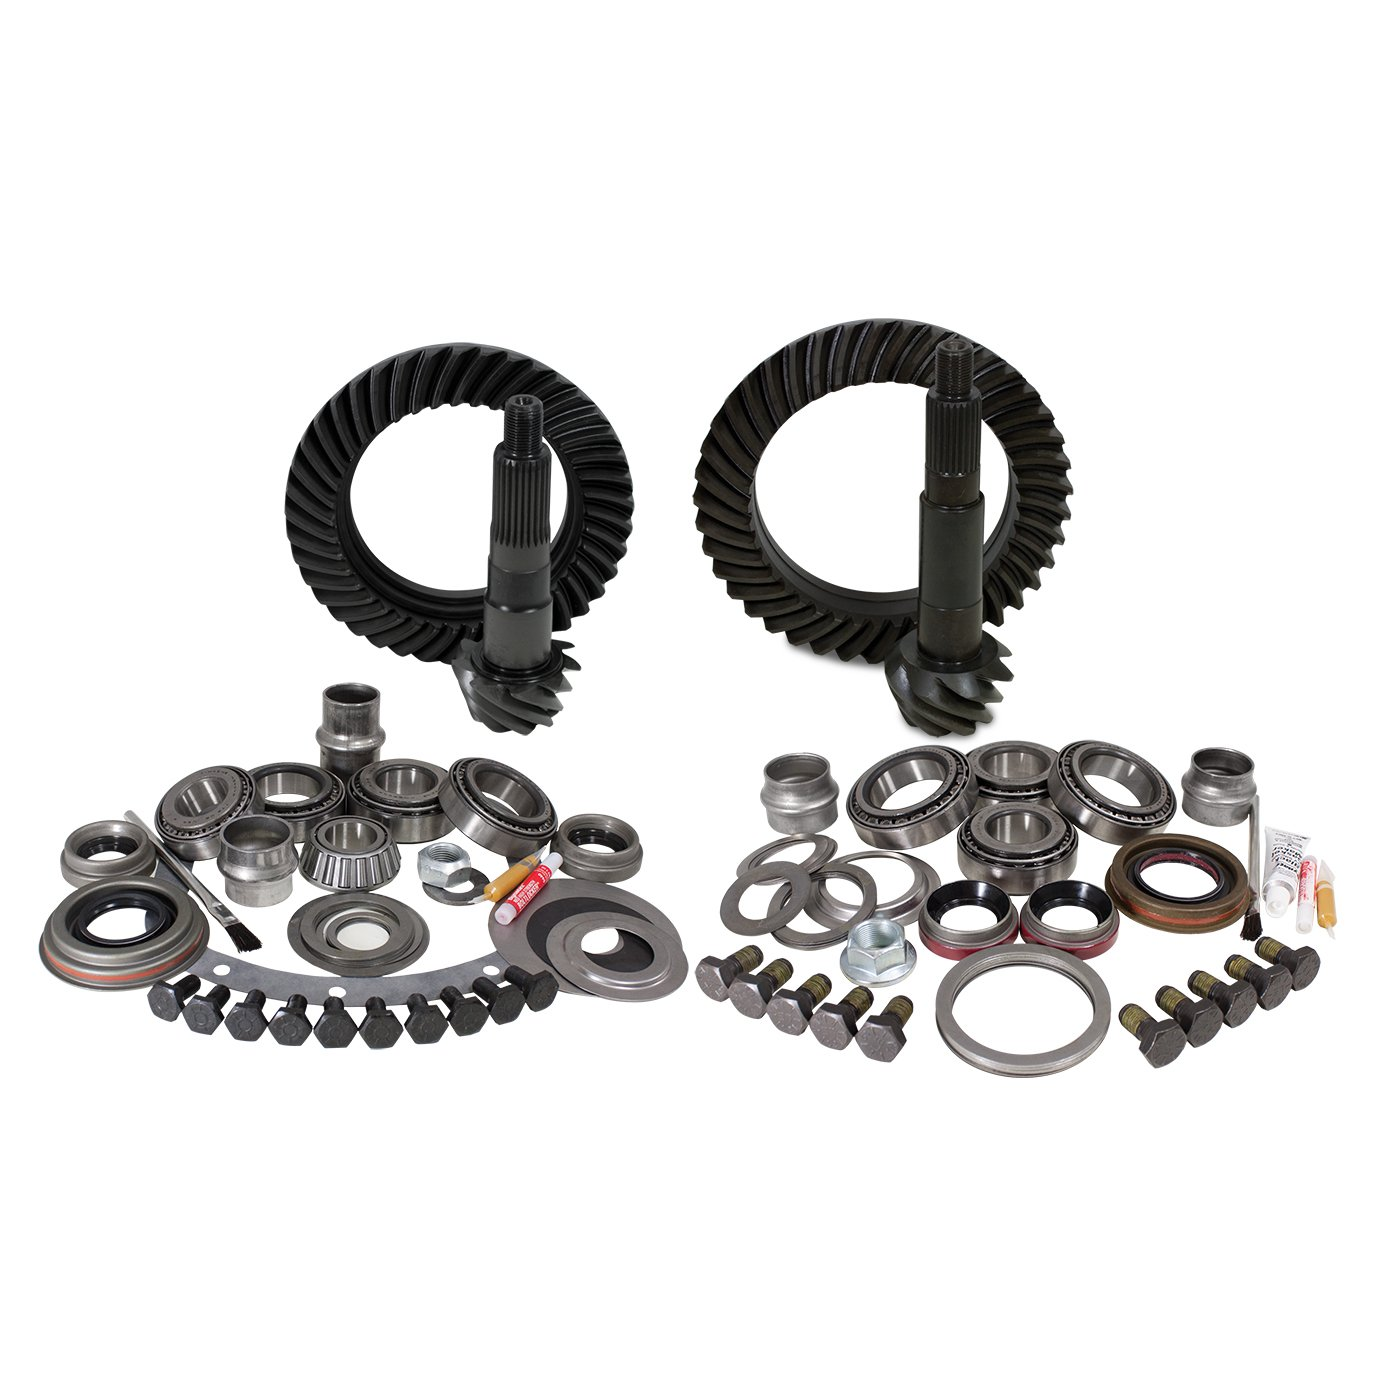 Yukon Gear & Axle (YGK012) Install Kit for Jeep JK non-Rubicon, 4.56 Ratio)